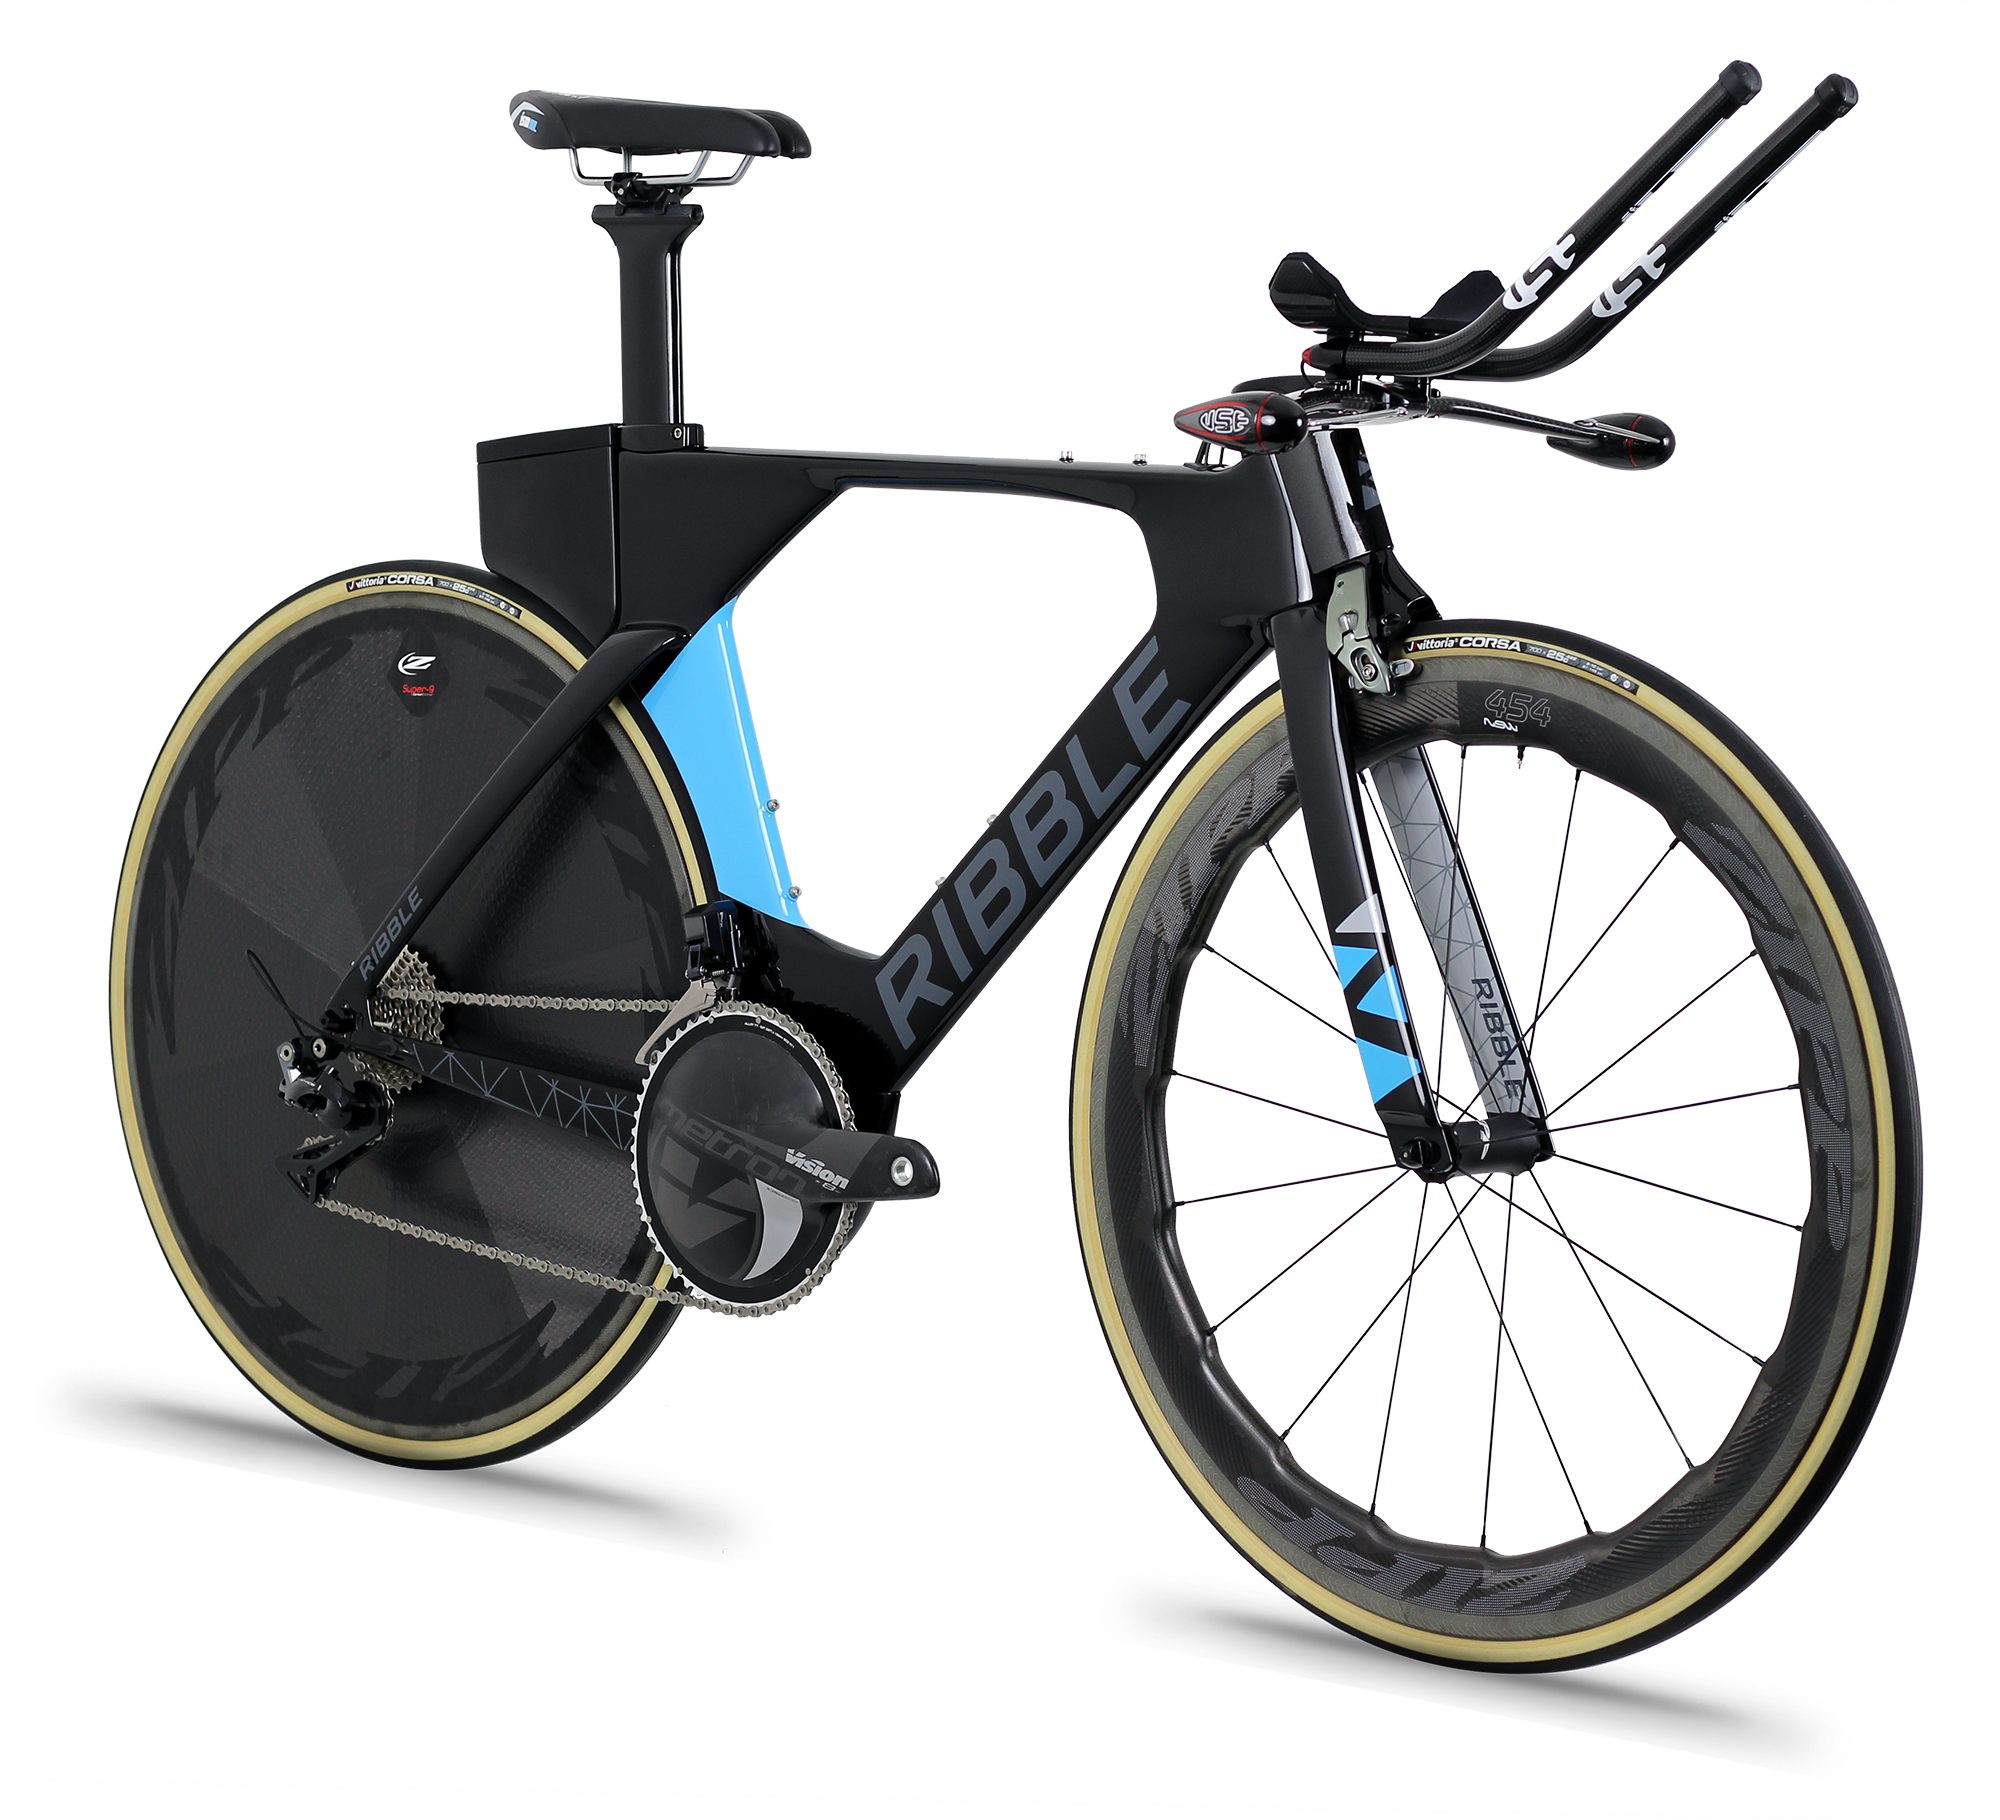 Ultra TT vision metron dura ace angled.png